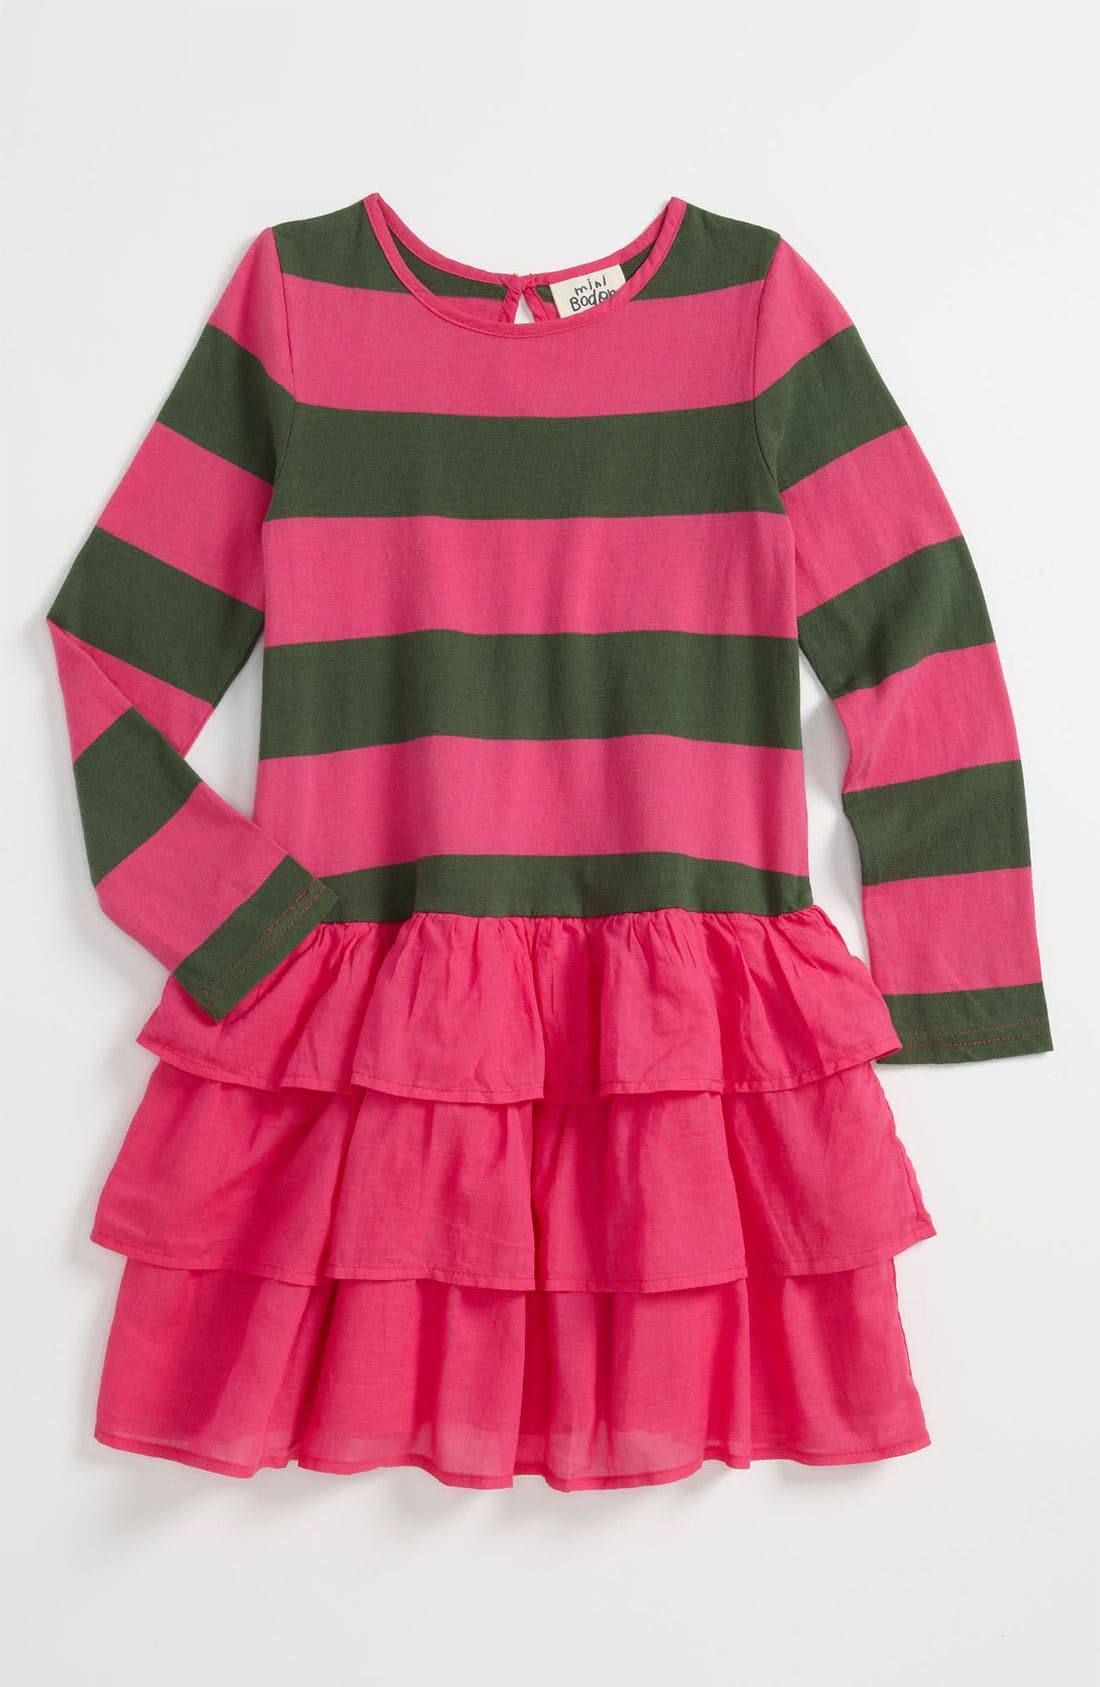 Main Image - Mini Boden Stripe Ruffle Dress (Little Girls & Big Girls)